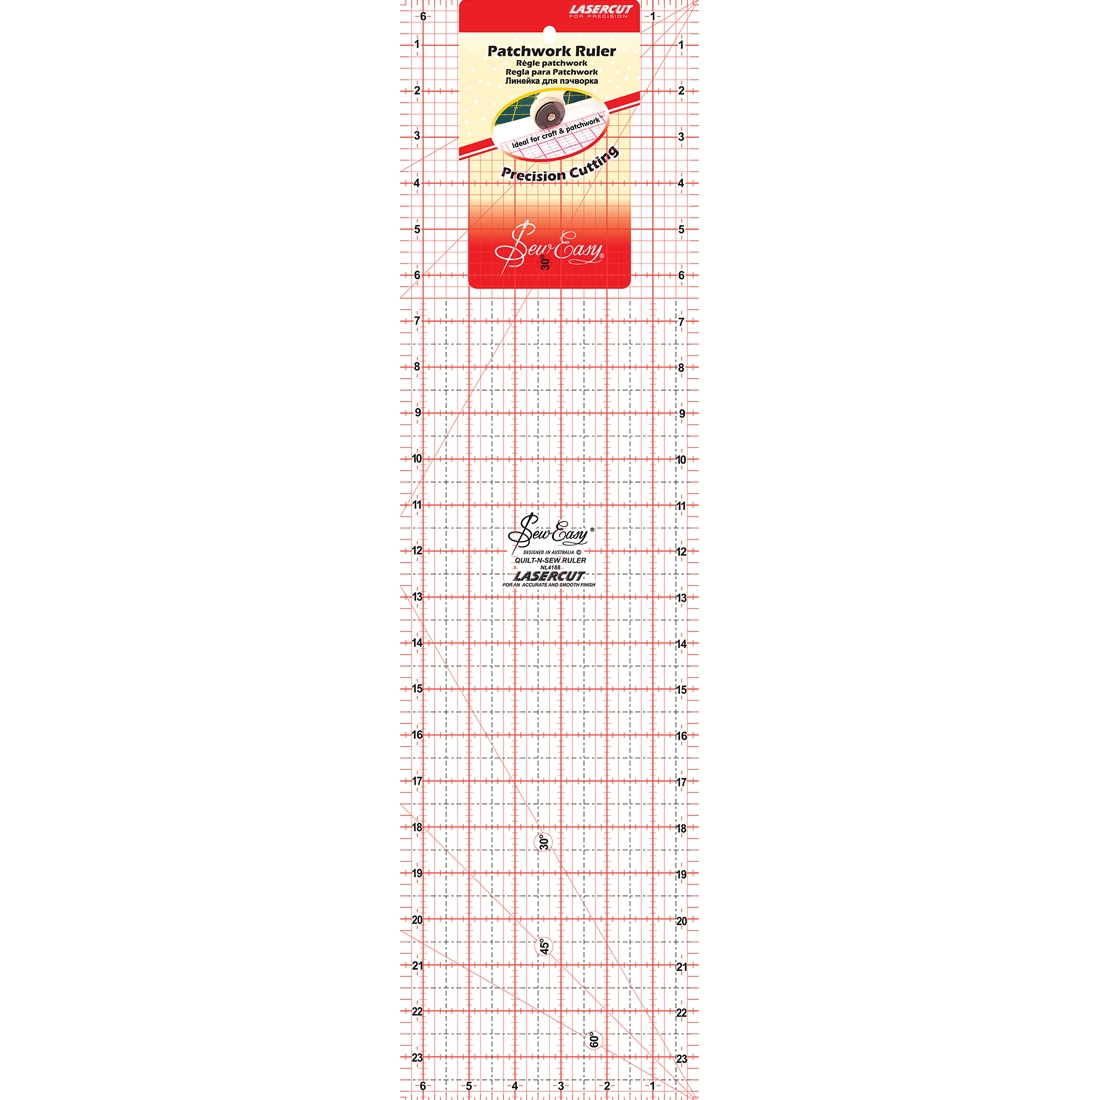 Patchwork 24 In x 6.5 In Ruler Sew Easy